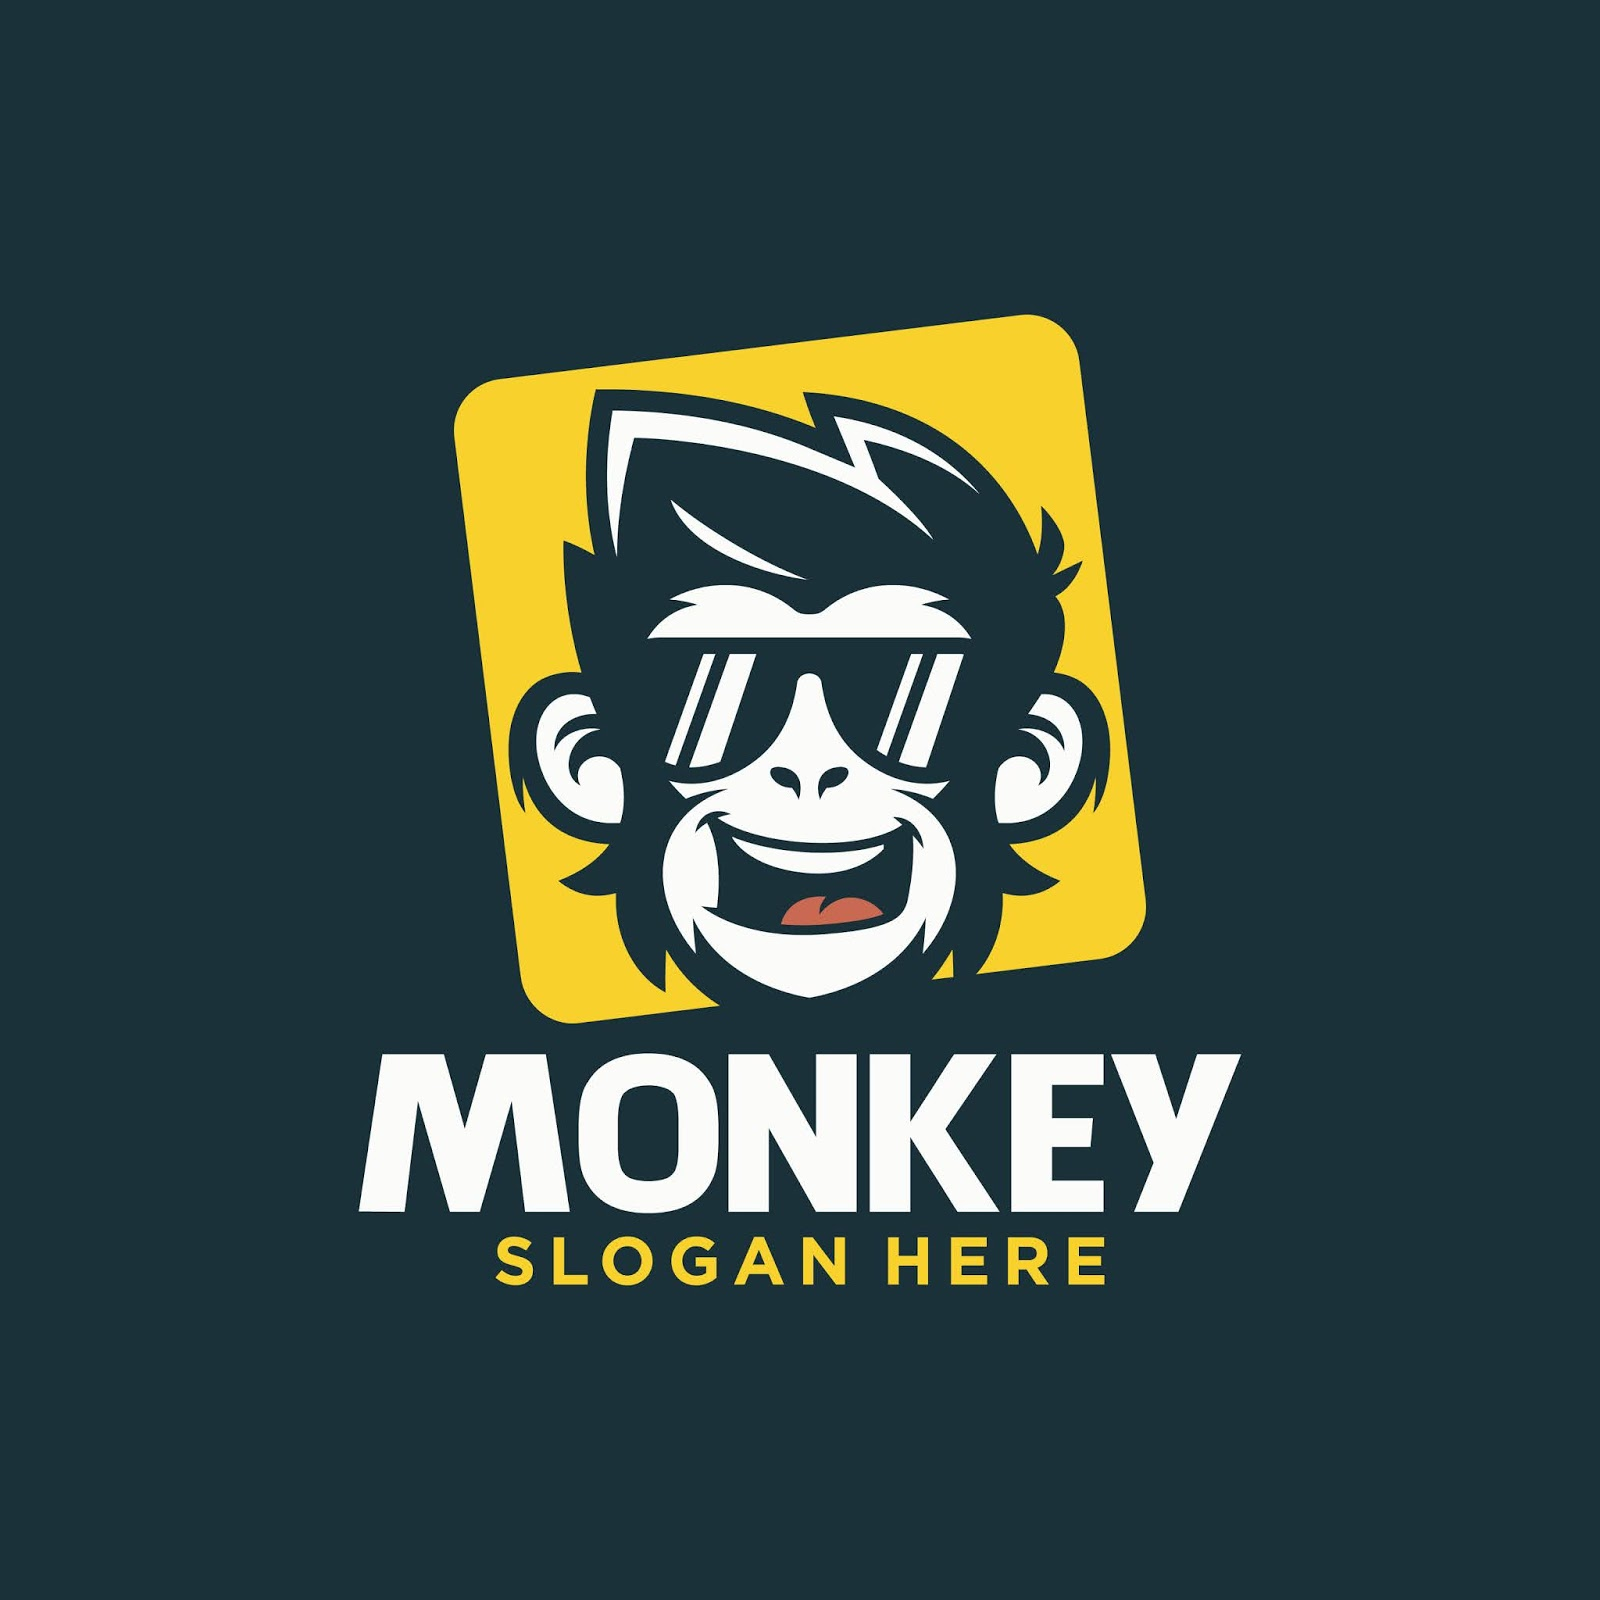 Cool Monkey Logo Design Vector Free Download Vector CDR, AI, EPS and PNG Formats